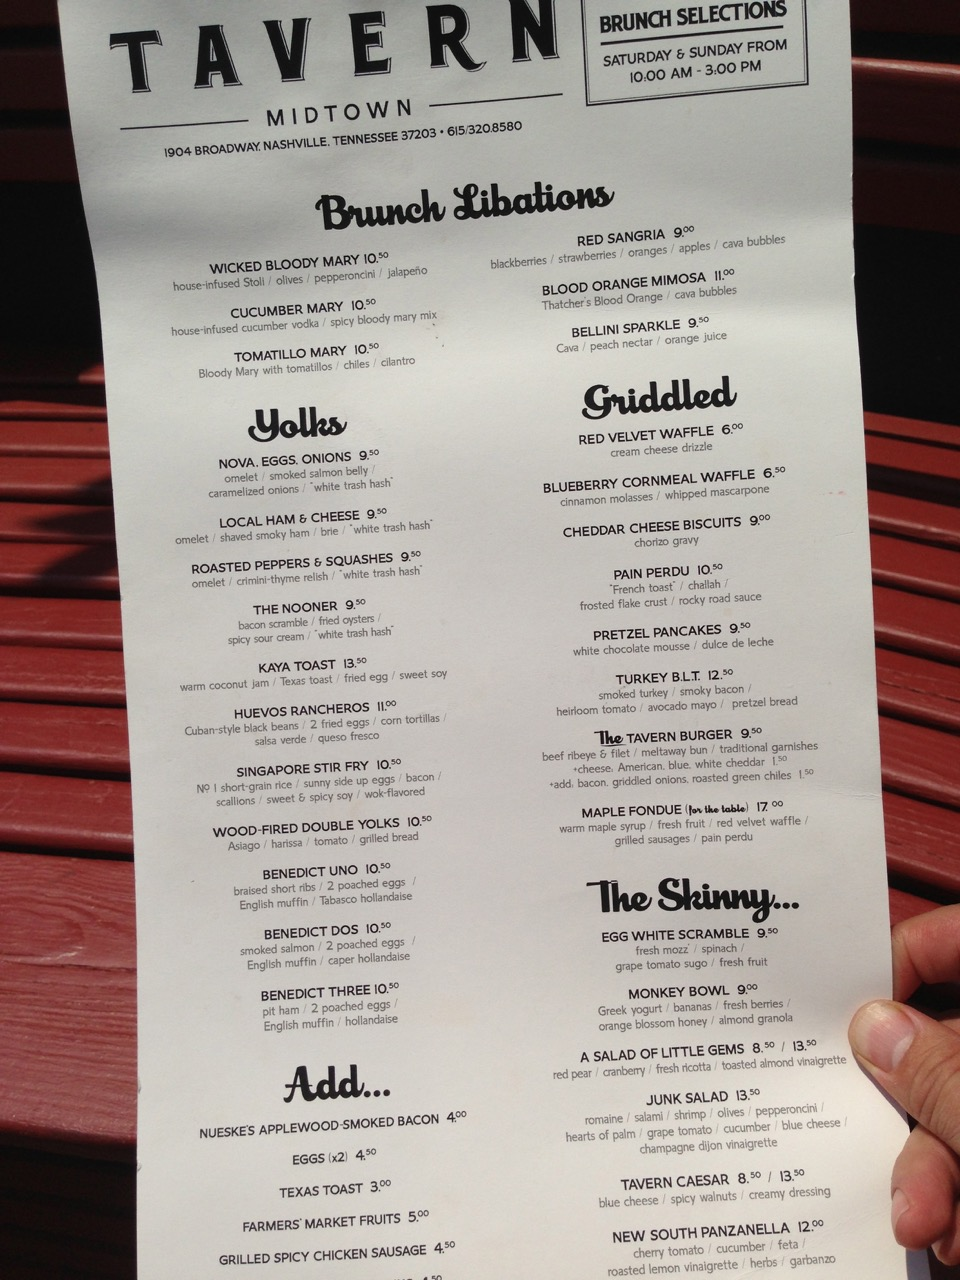 Brunch Menu at the Tavern in Nashville